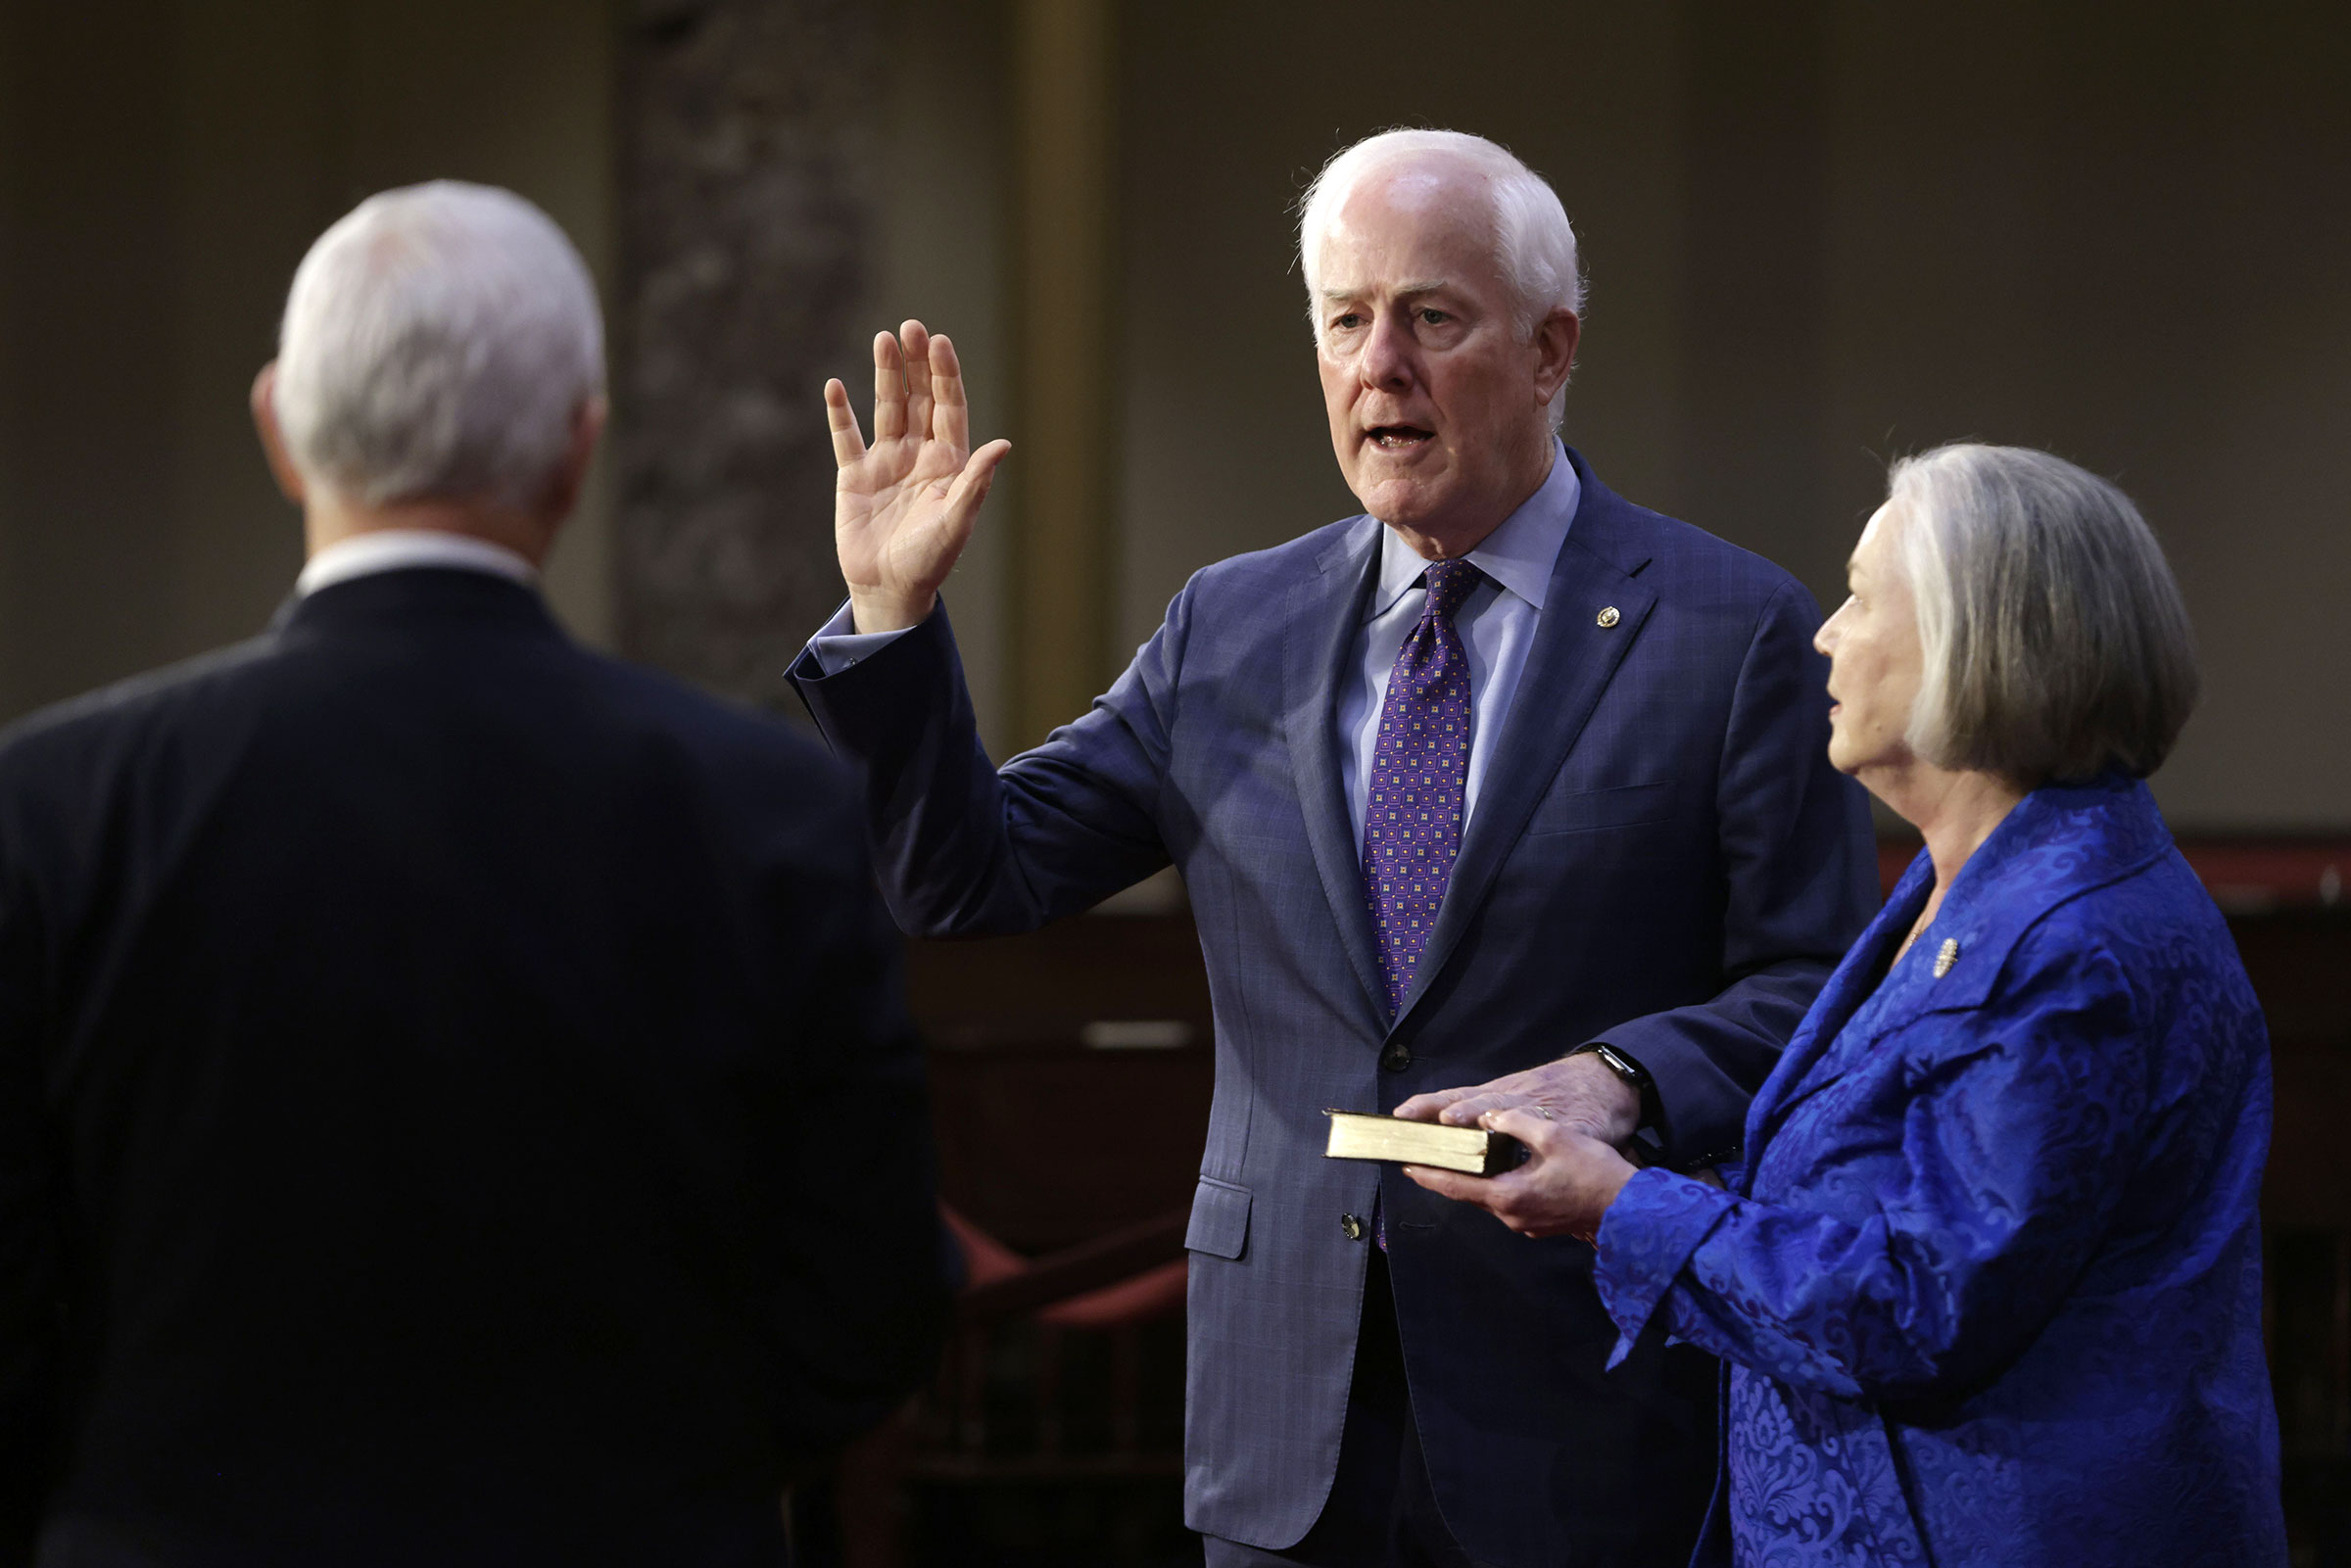 Sen. John Cornyn is ceremoniously sworn-in by Vice President Mike Pence in Washington, DC on January 3.